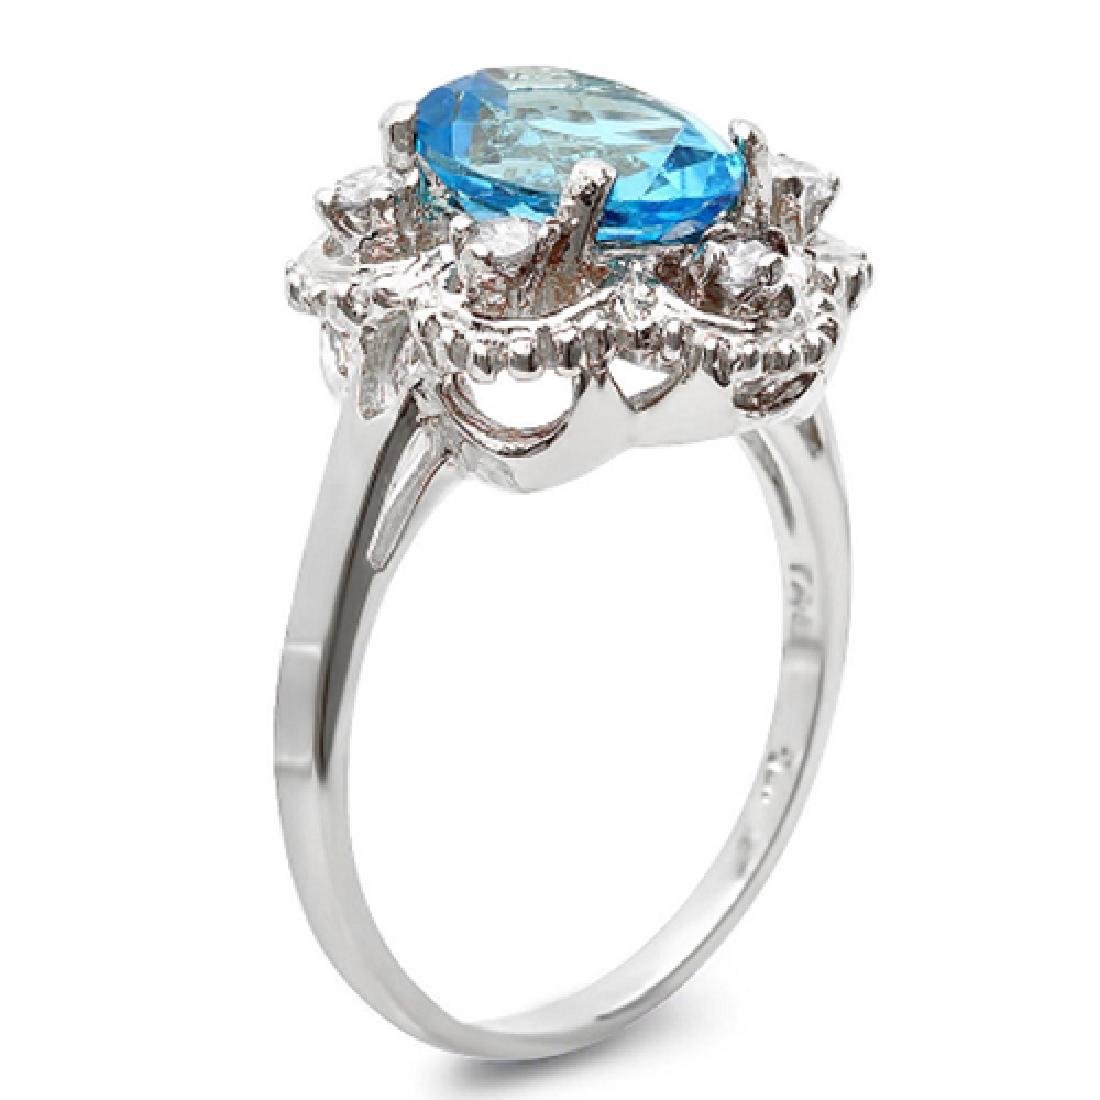 2.45 Carat Natural Topaz 18K Solid White Gold Diamond - 2